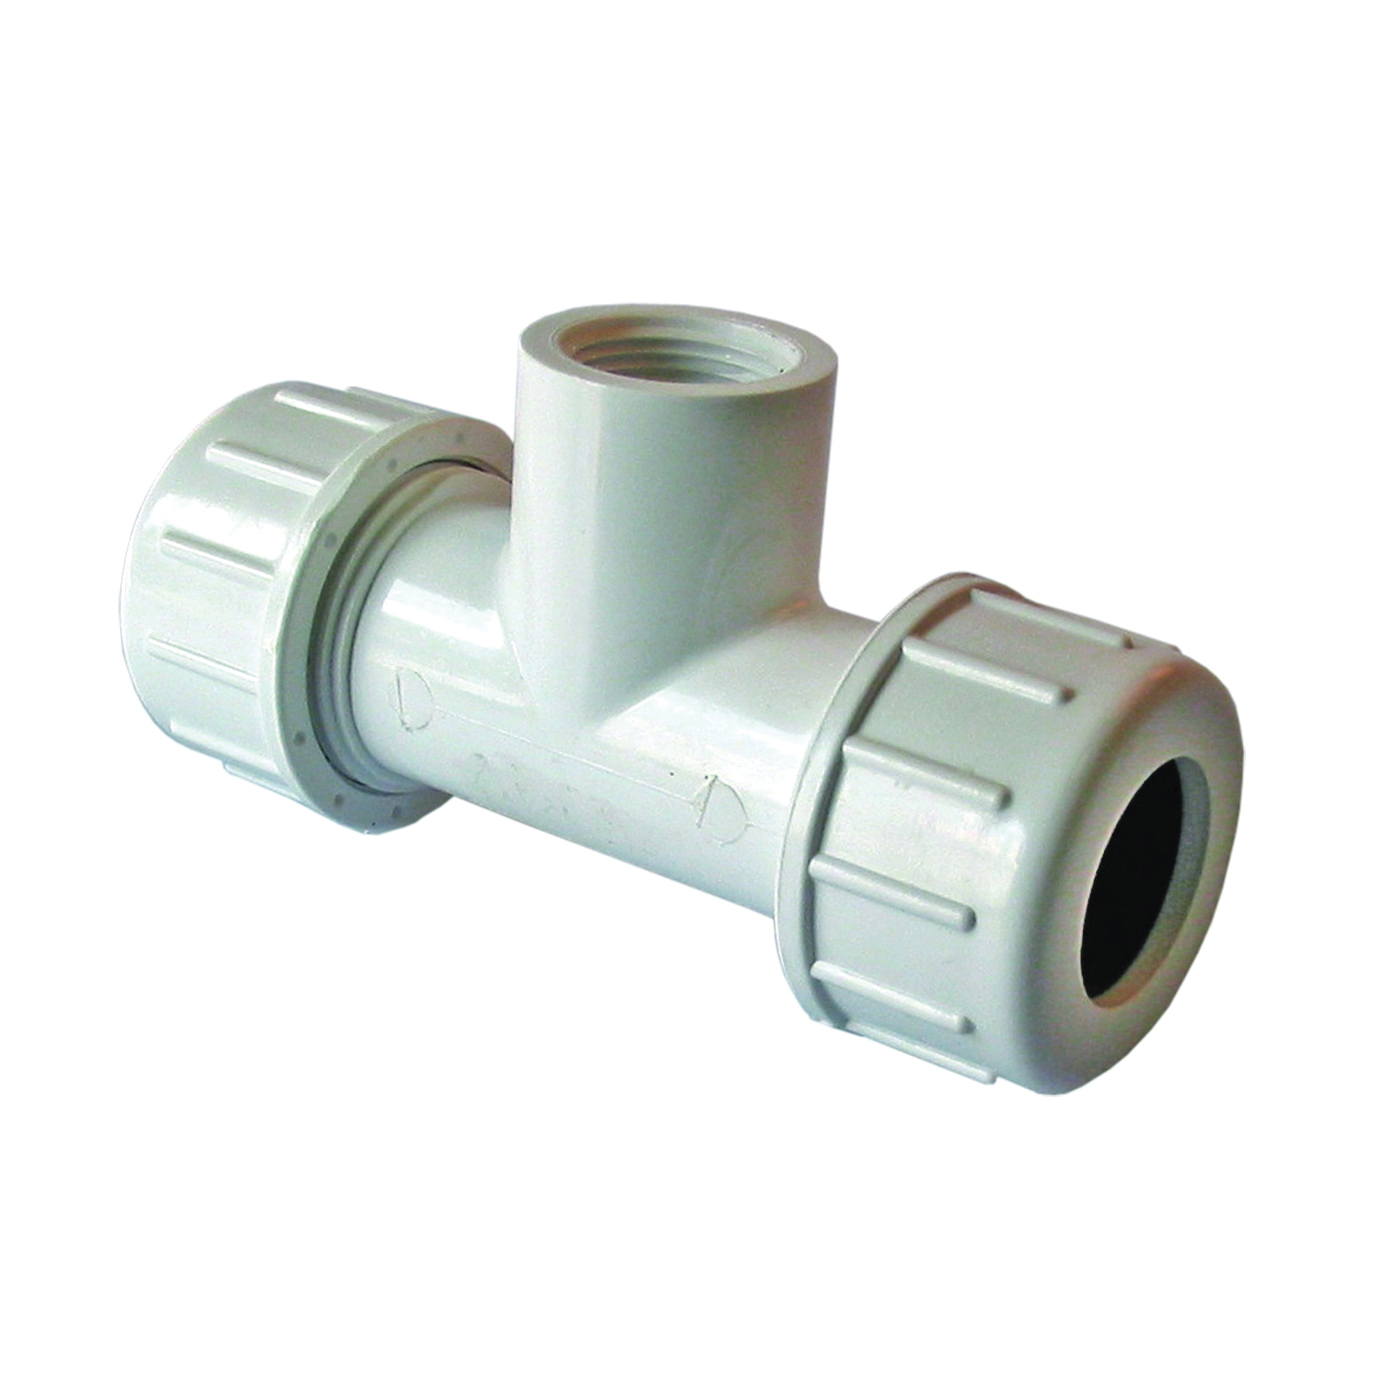 Picture of AMERICAN VALVE P230 1 Pipe Tee, 1 in Run, Compression x Compression x Female NPT Run Connection, 1 in Branch